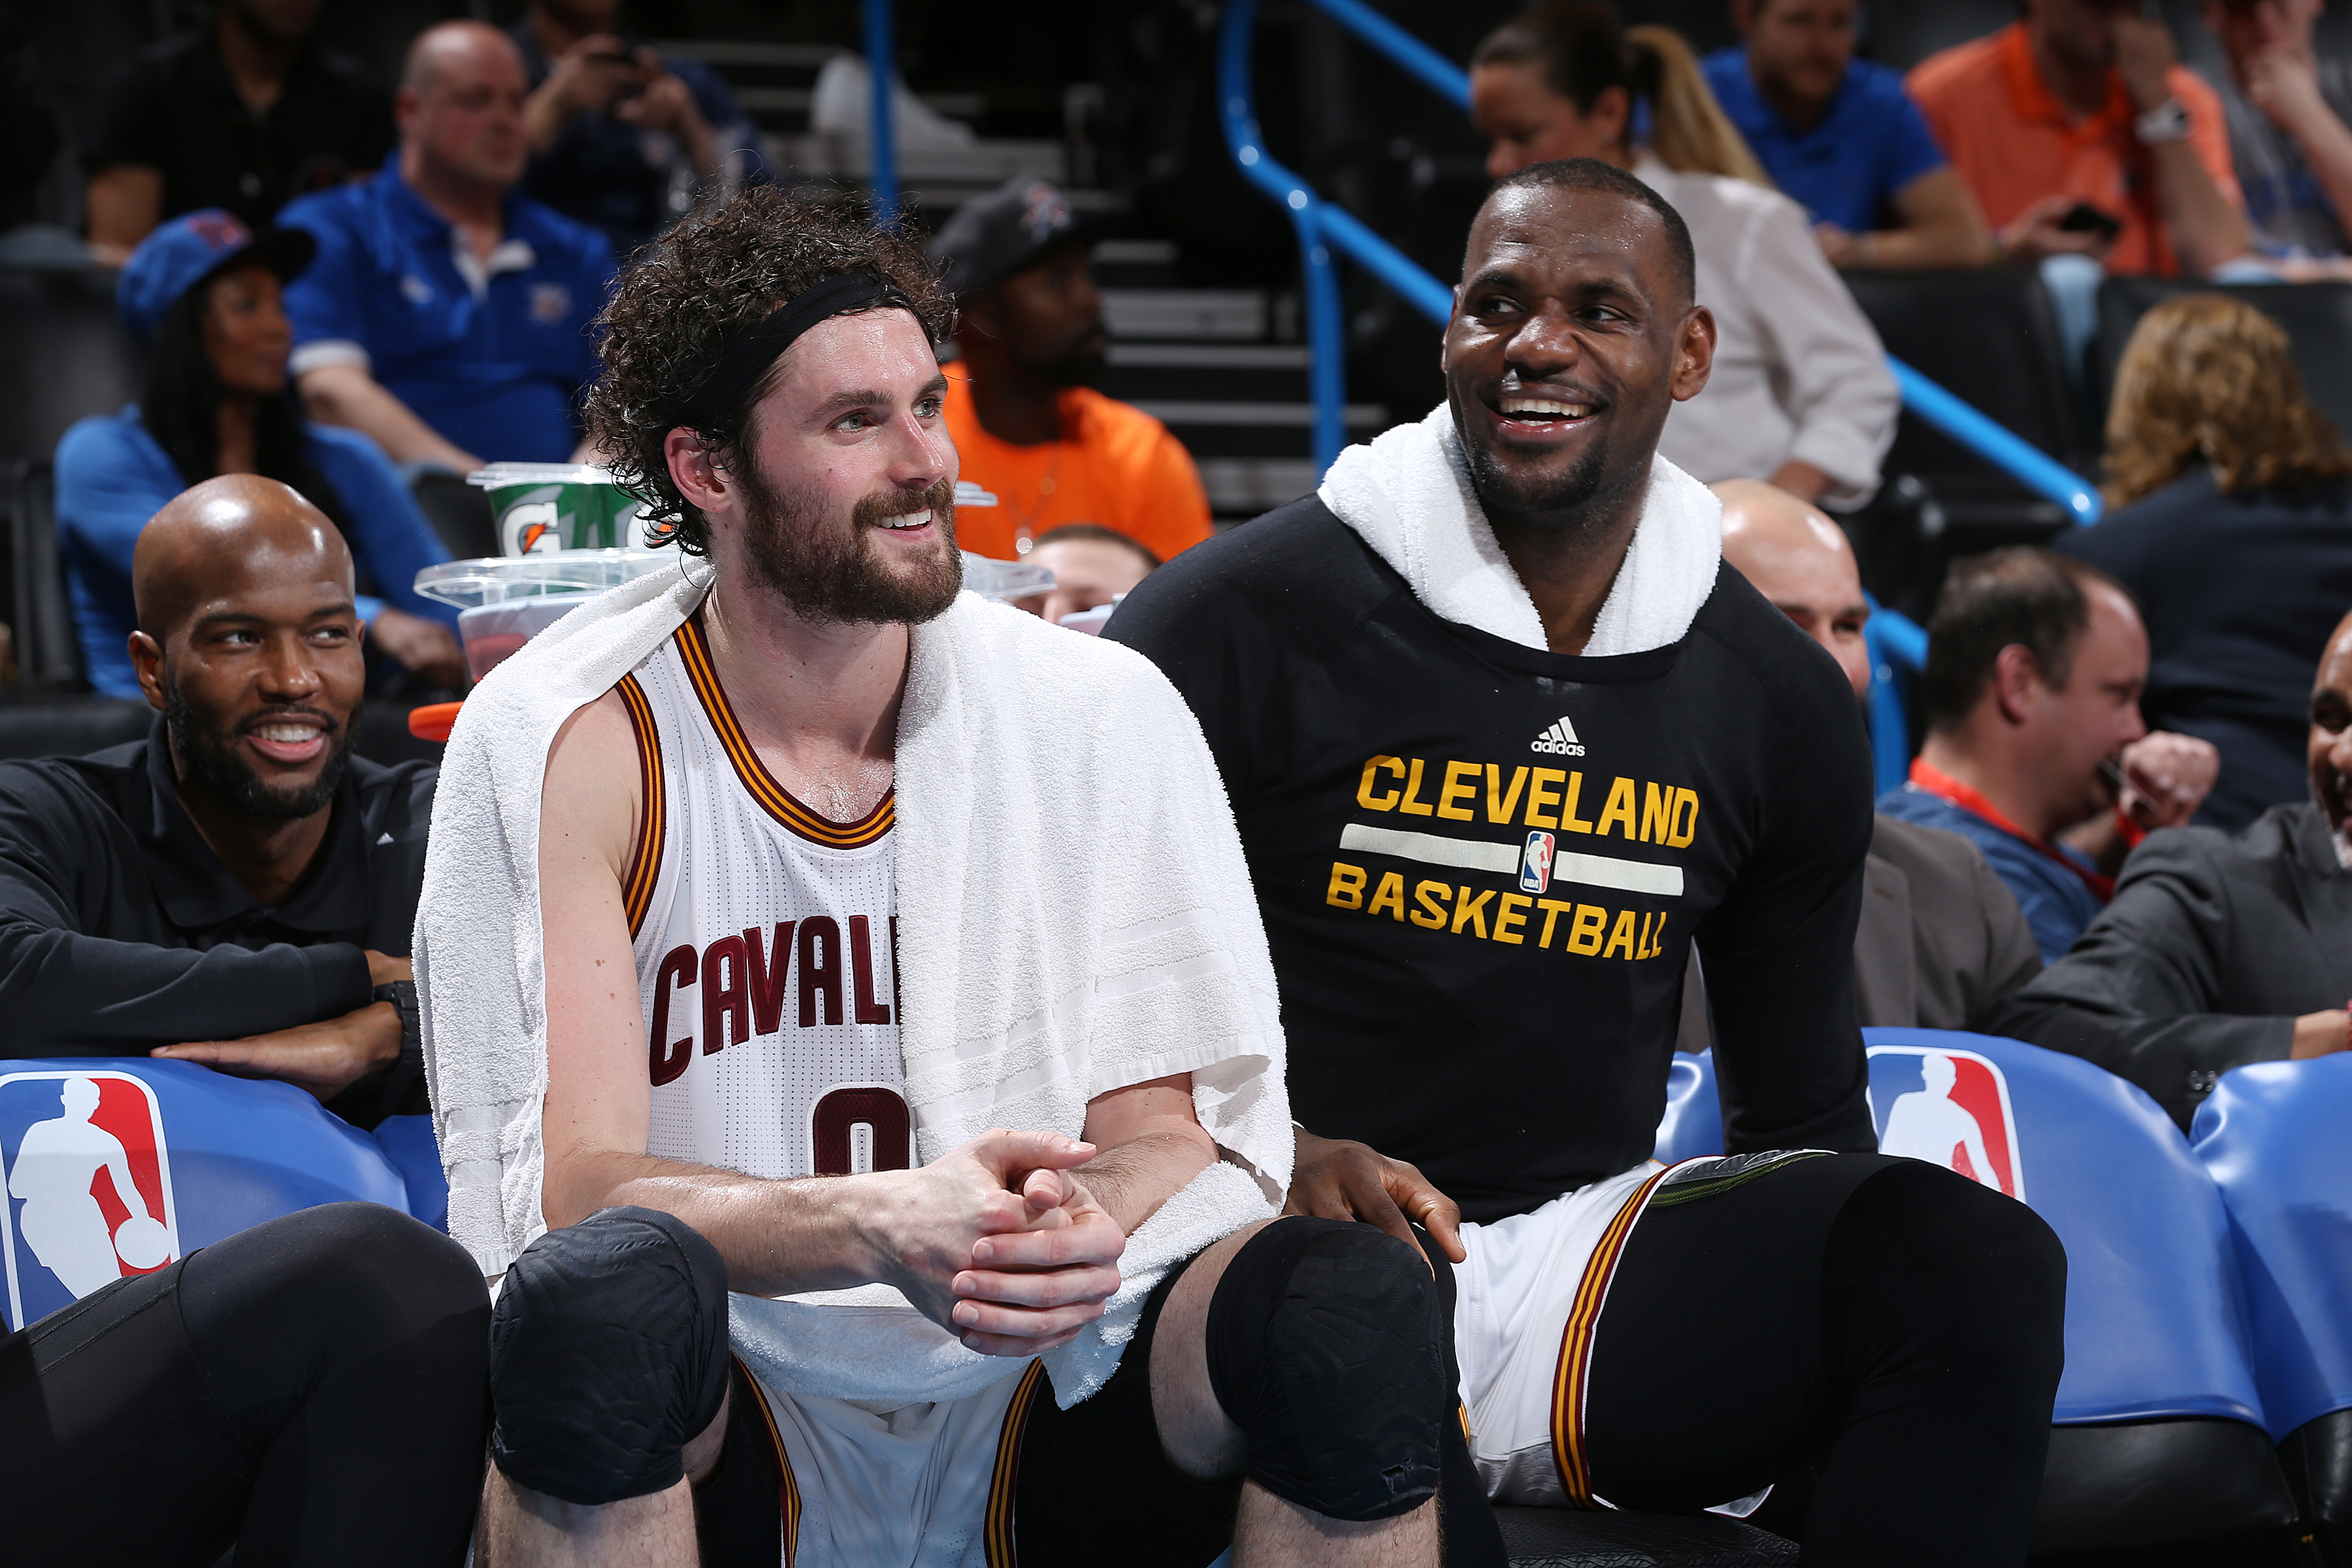 OKLAHOMA CITY, OK- FEBRUARY 21:  Kevin Love #0 of the Cleveland Cavaliers and LeBron James #23 of the Cleveland Cavaliers talk on the bench during the game against the Oklahoma City Thunder on February 21, 2016 at Chesapeake Energy Arena in Oklahoma City,